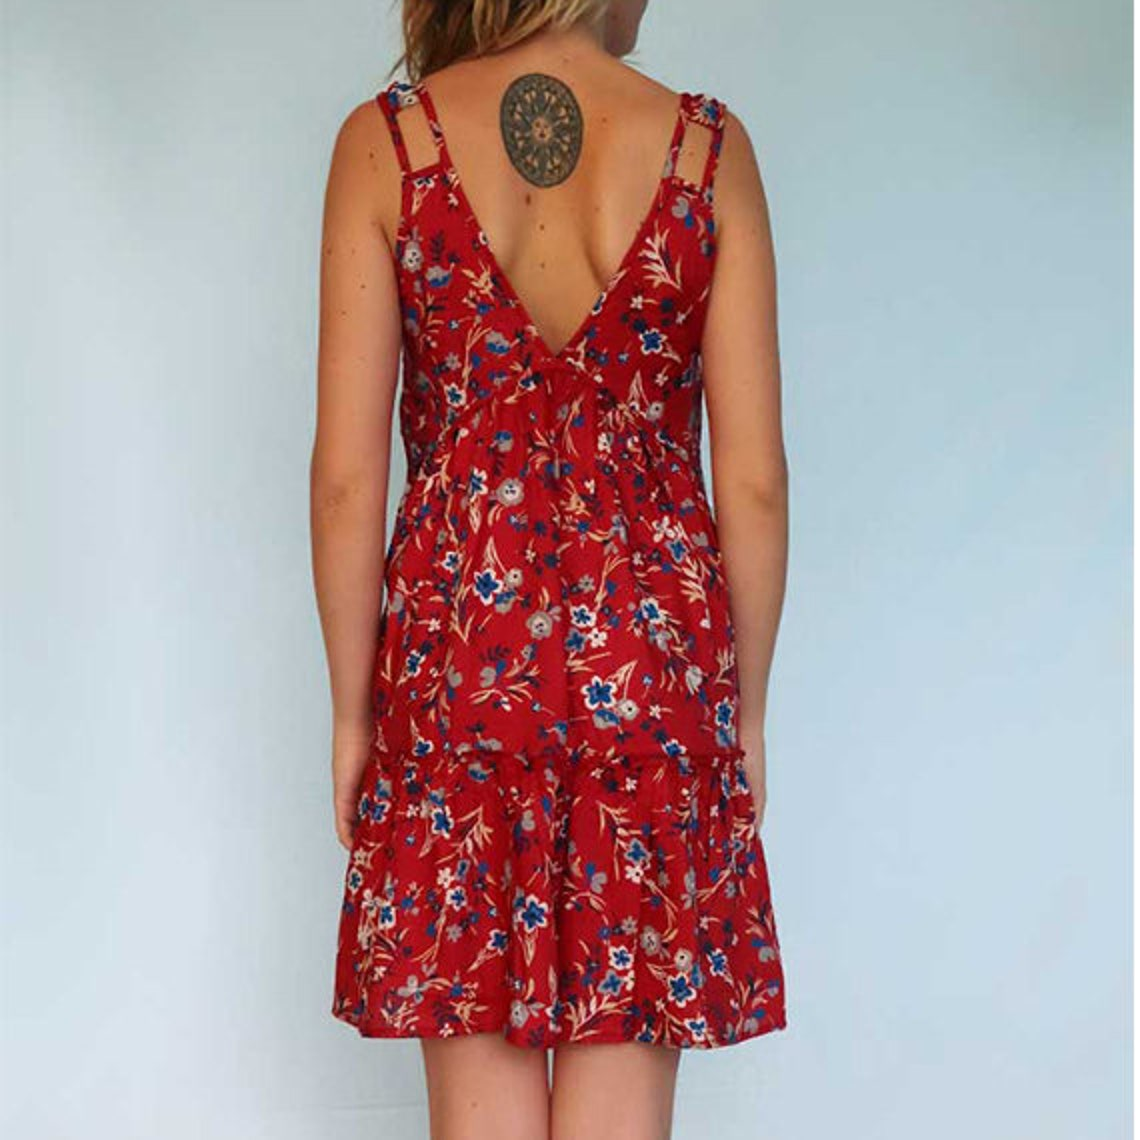 Ethical red floral dress